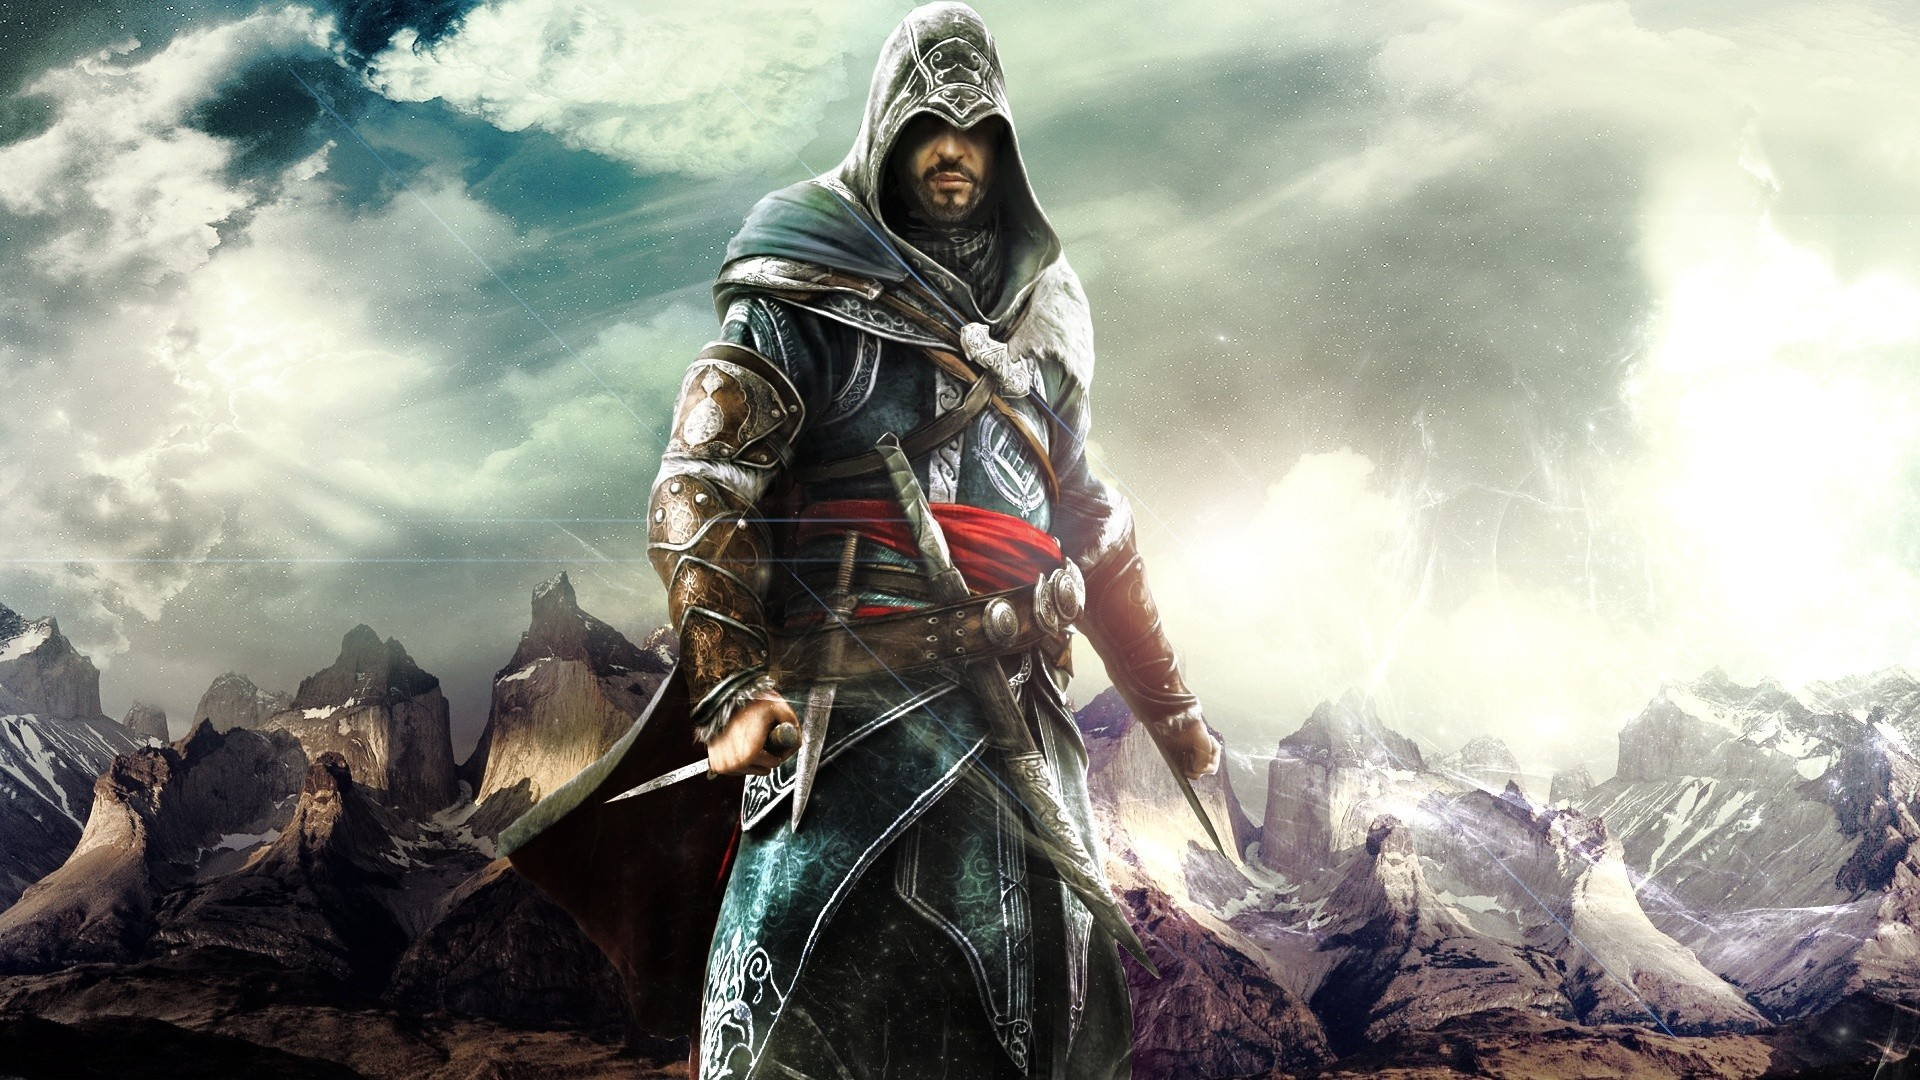 HD Video Game Wallpaper Game Wallpaper for both Mobile and | HD Wallpapers  | Pinterest | Gaming wallpapers and Wallpaper